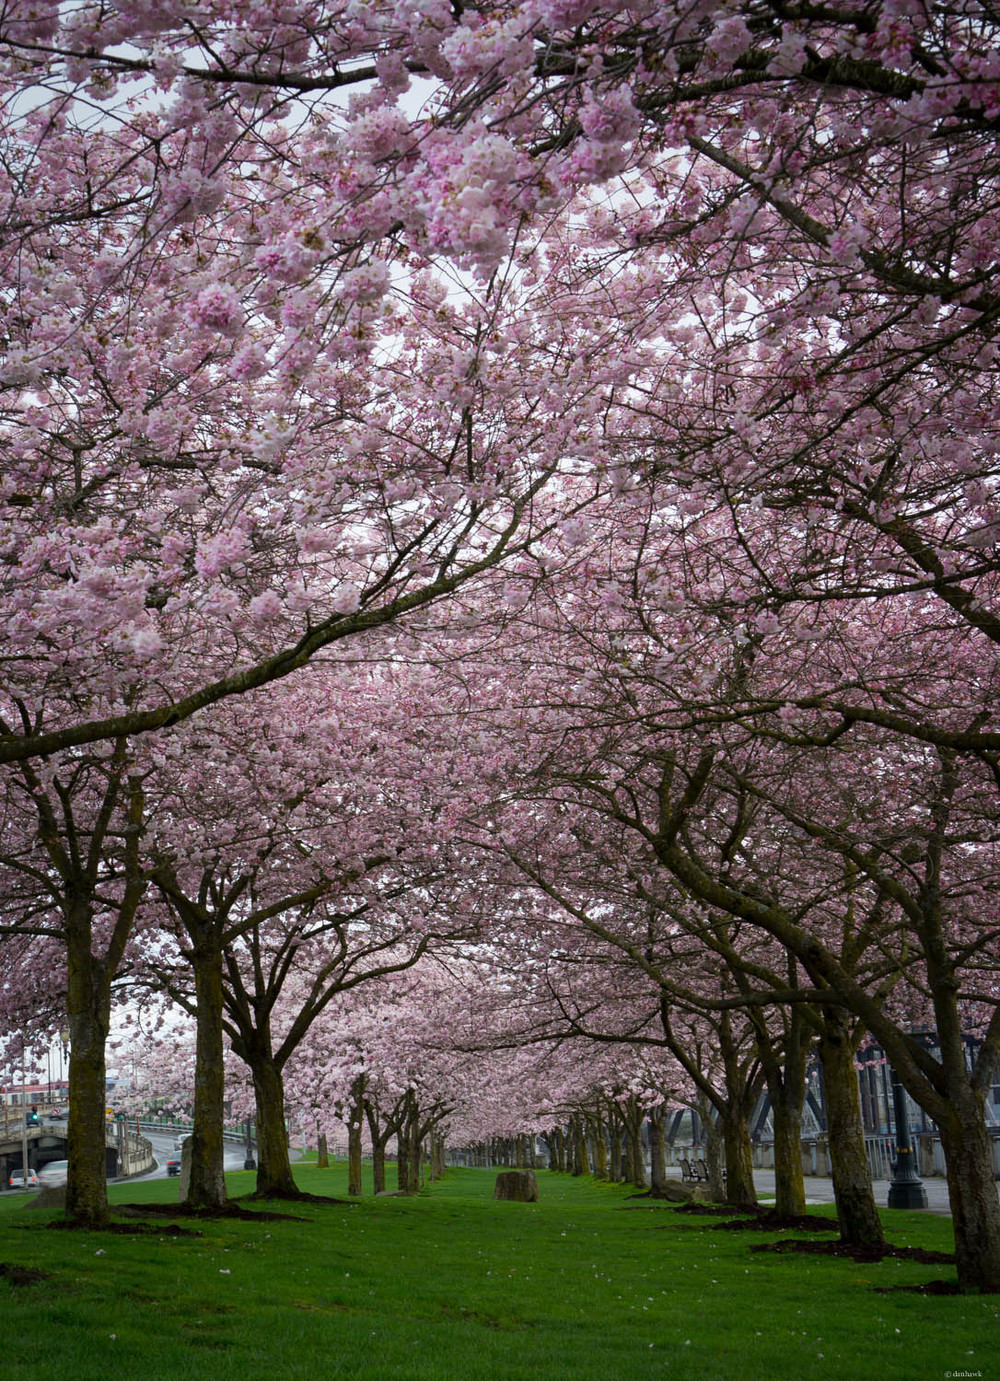 Cherry Blossom Canopy | 35mm, f/8, ISO 100, 1/10